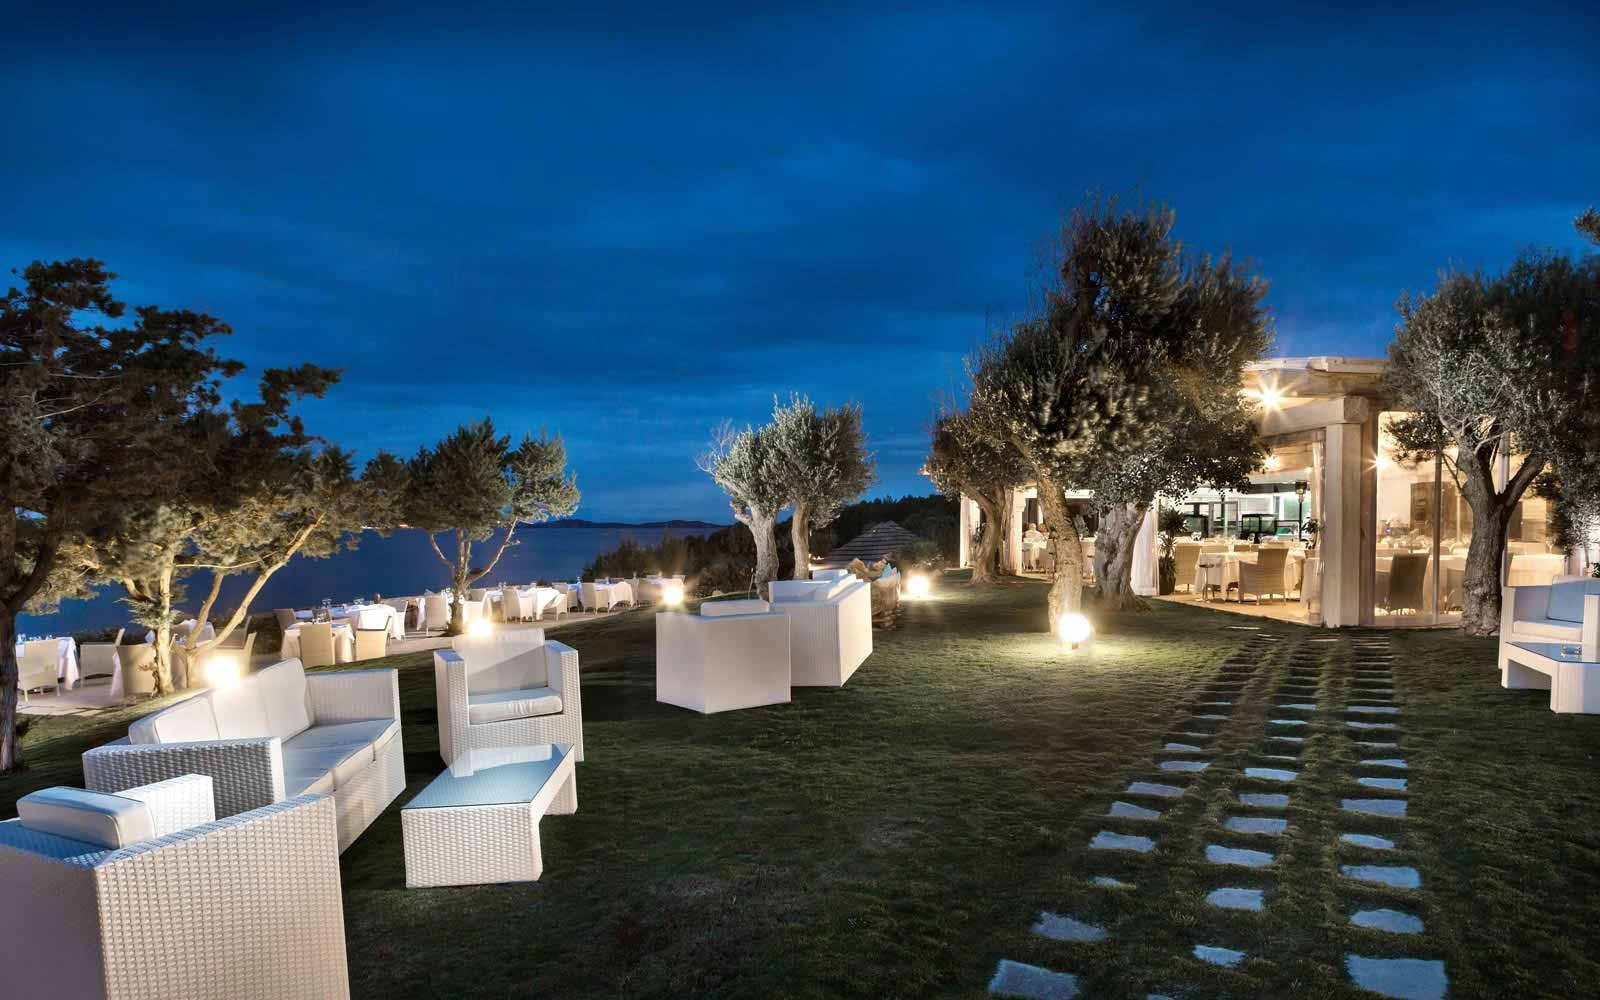 Restaurant night view at Hotel La Rocca Resort & Spa